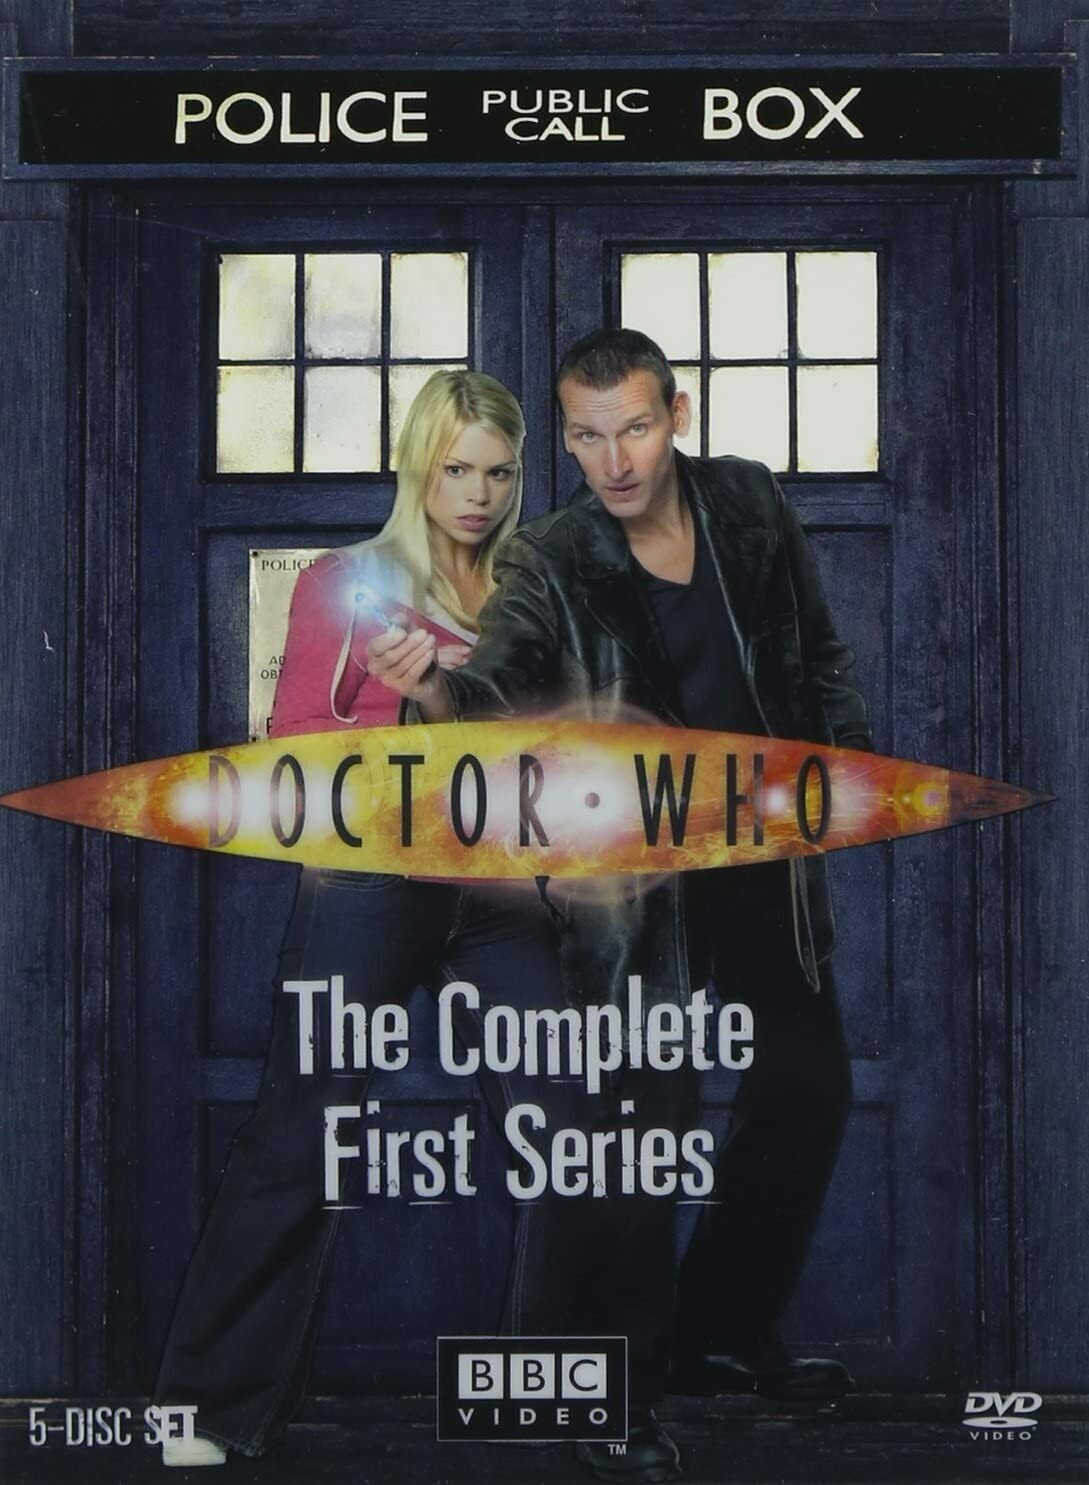 Doctor Who The Complete First Series (7 day rental)